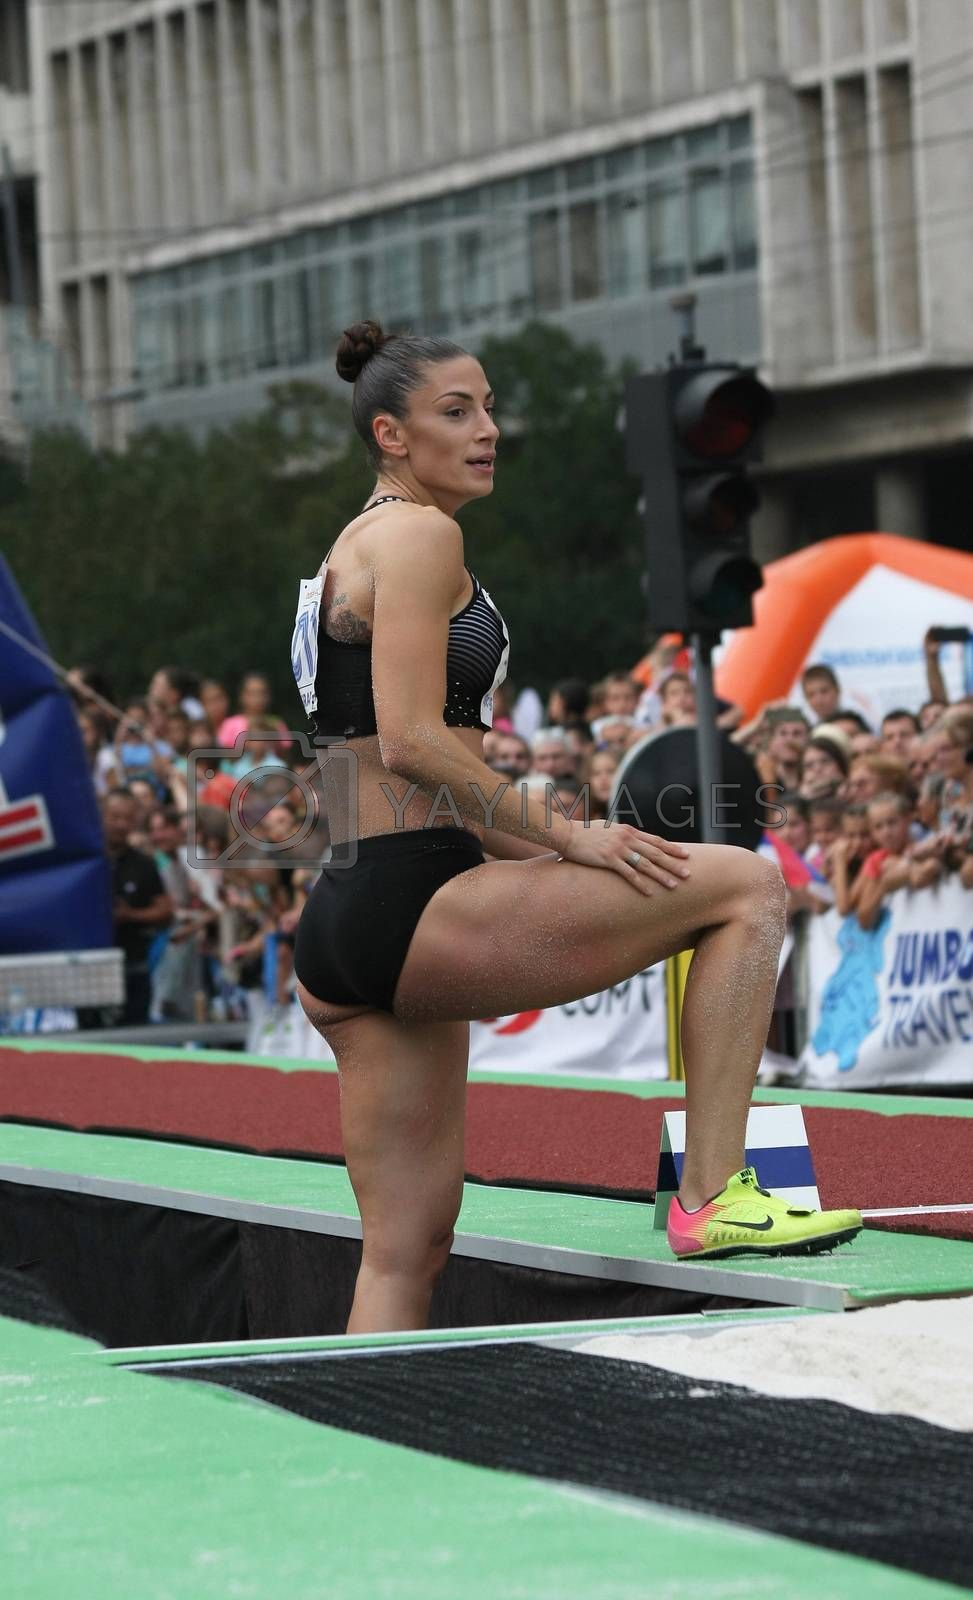 BELGRADE,SERBIA - SEPTEMBER 11 , 2016: Ivana Spanovic waiting for result after her jump at long jump competition as promotion of European athletics indoors championship which will be held from 3-5.March ,2017 in Belgrade,Serbia